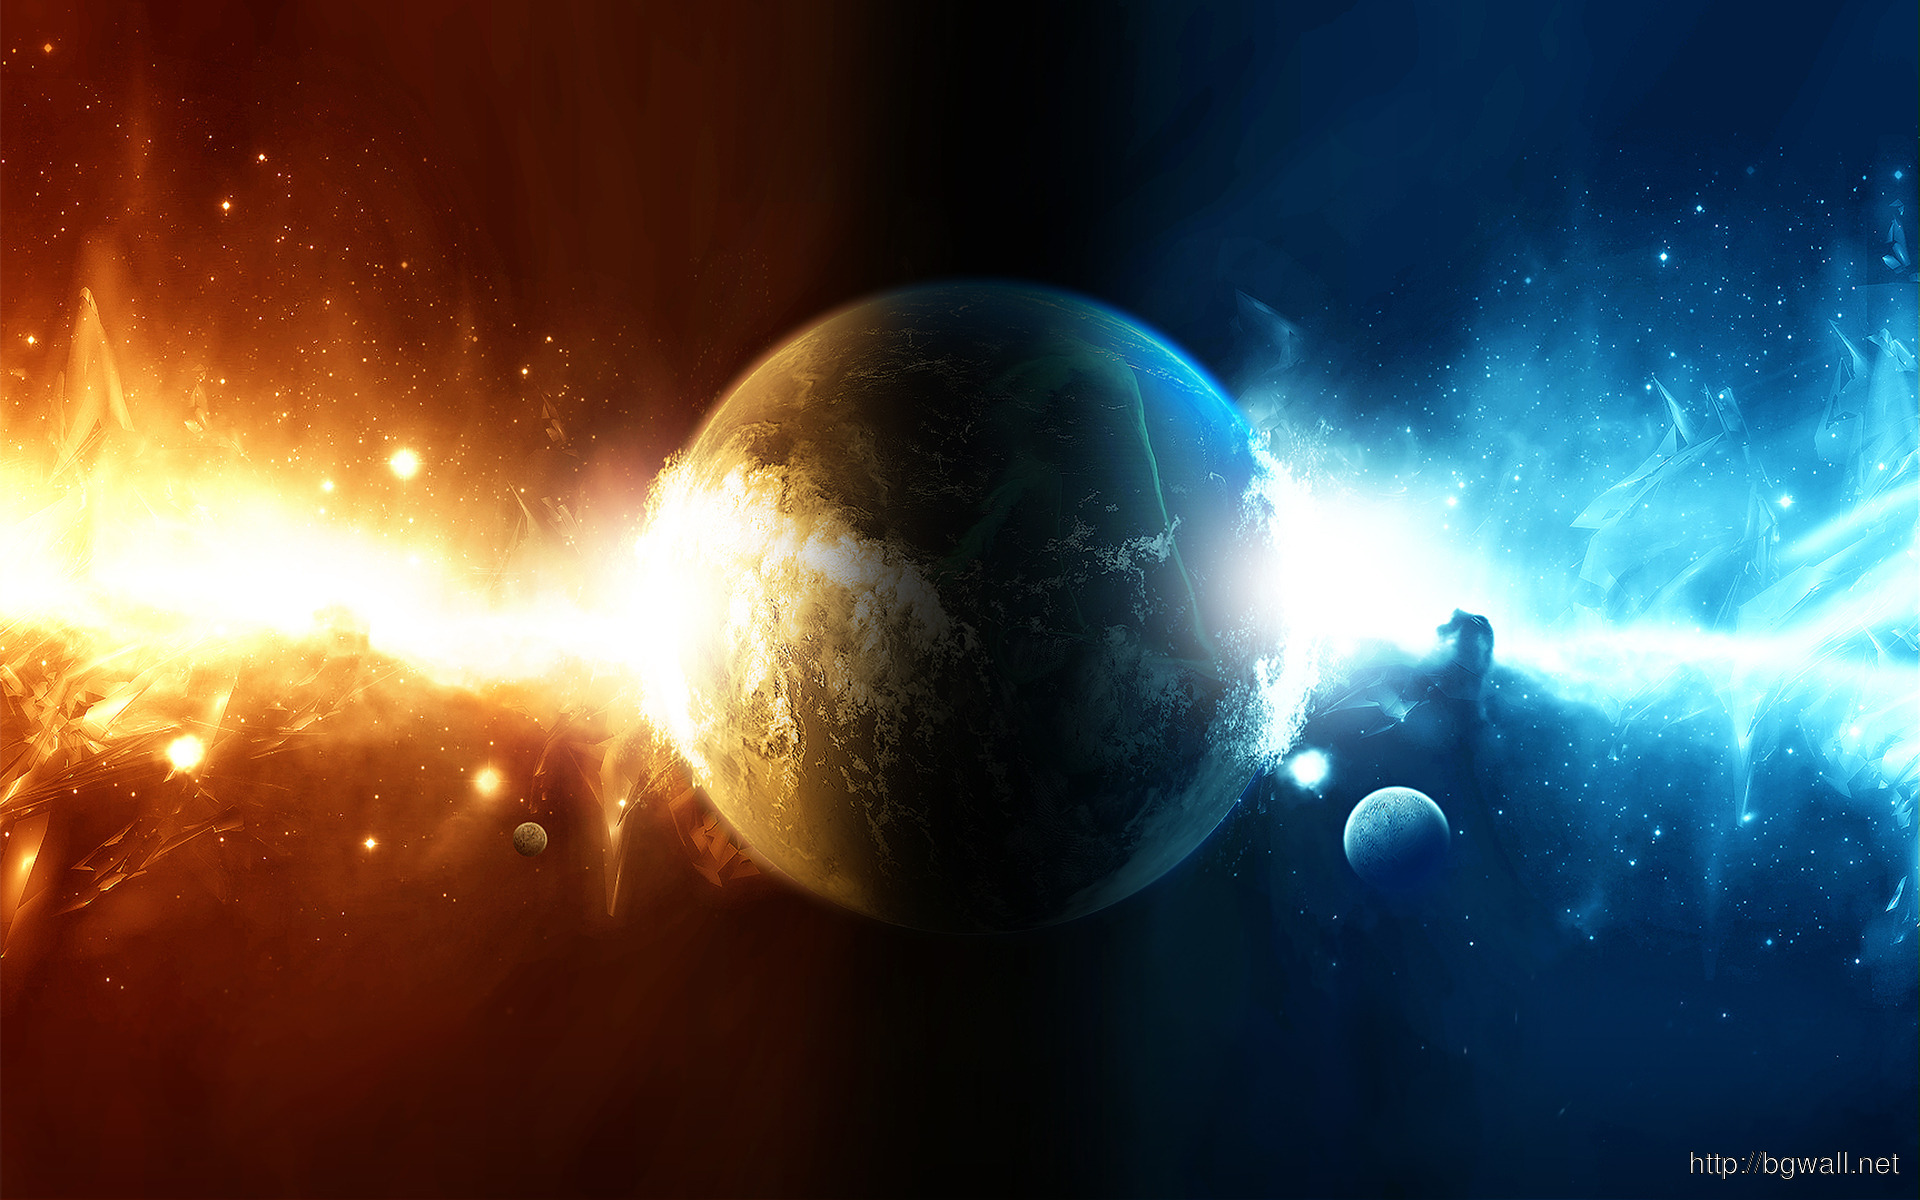 Water And Fire Colliding In The Planet Wallpaper 5173 Full Size